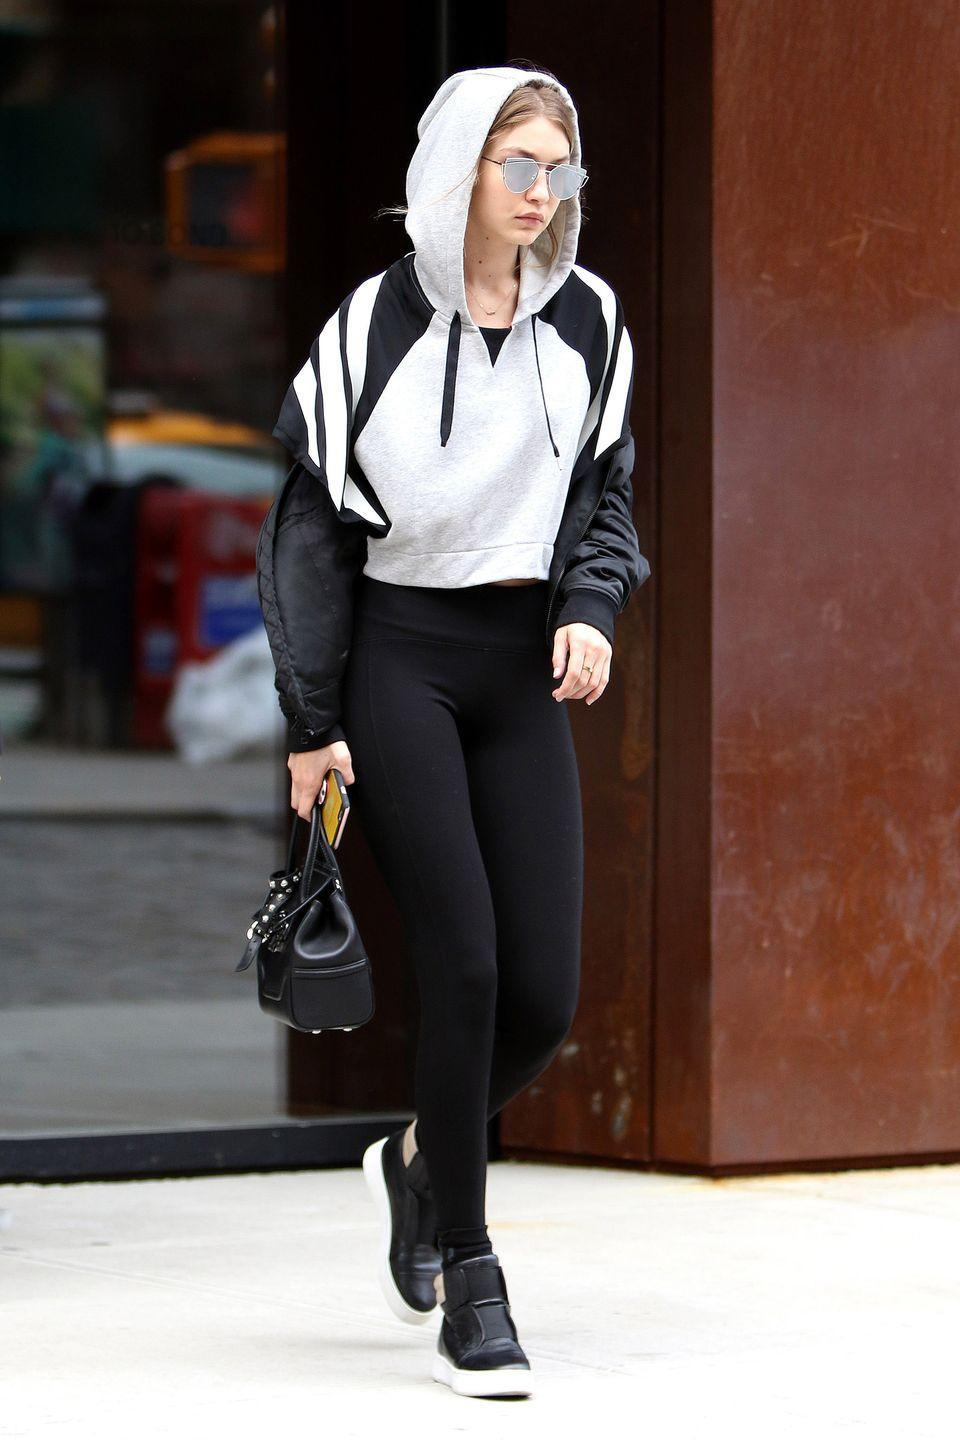 <p>Gigi Hadid stepping out of her apartment in Opening Ceremony leggings, a cropped sweatshirt, and Gentle Monster sunglasses. </p>